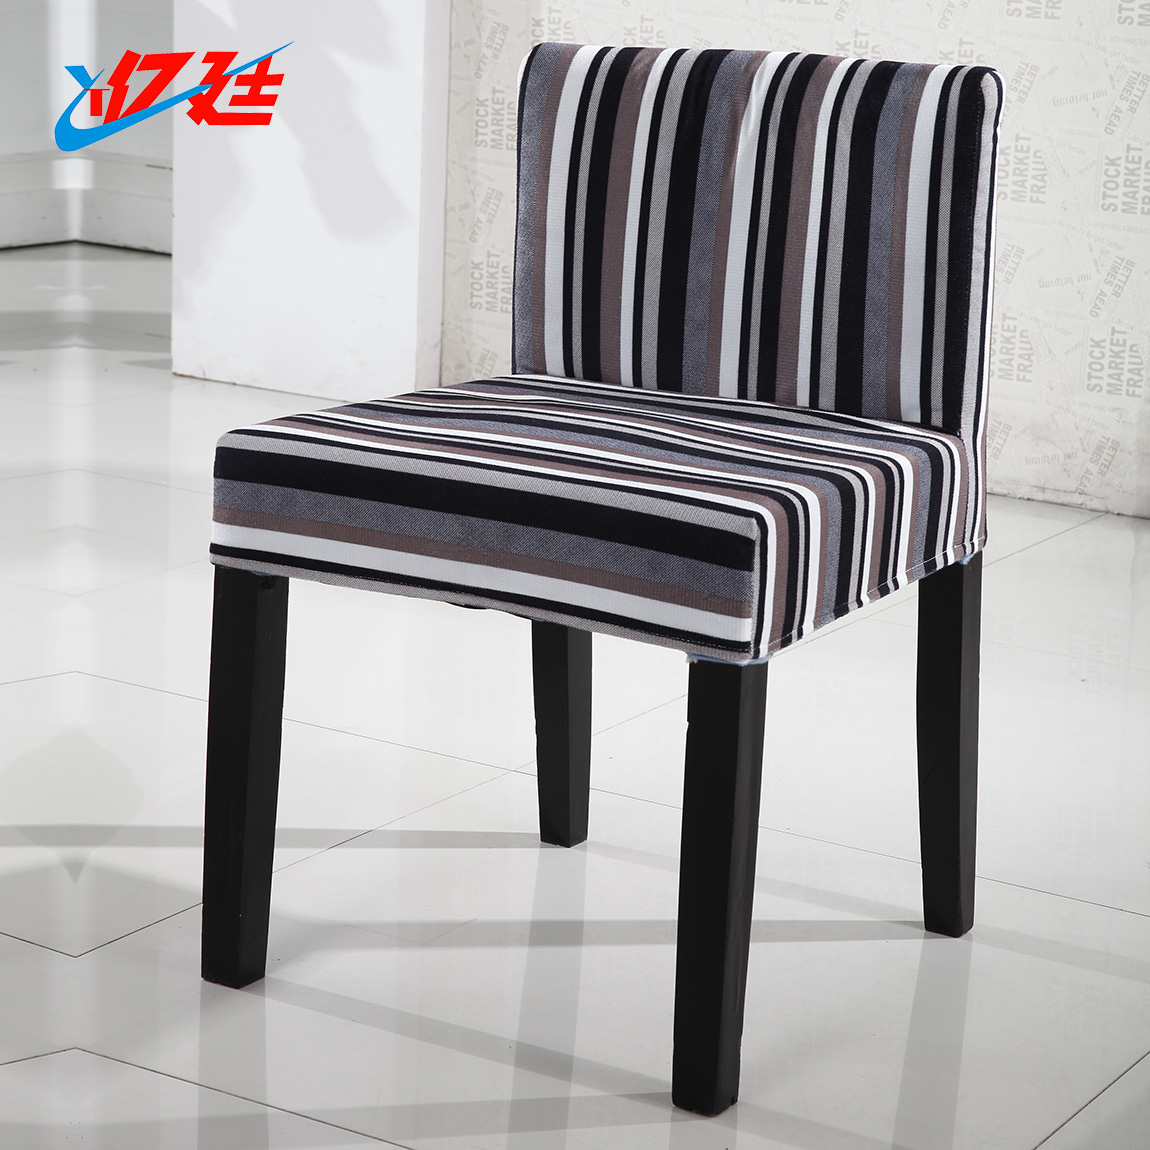 Buy Western Hotel Restaurant Dining Chairs Cafe Chairs Tea